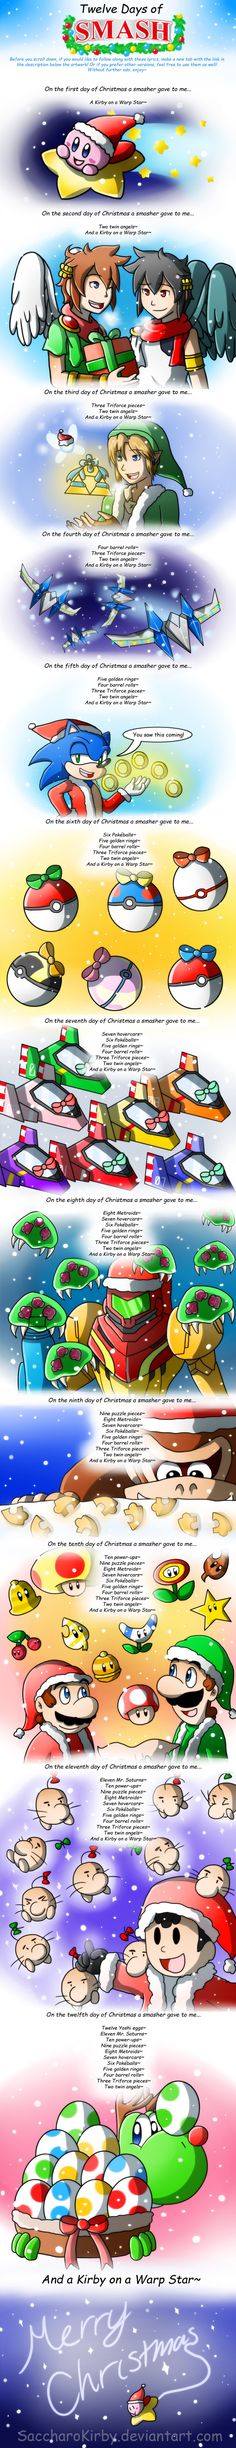 Twelve Days of Smash~ by SaccharoKirby.deviantart.com on @DeviantArt